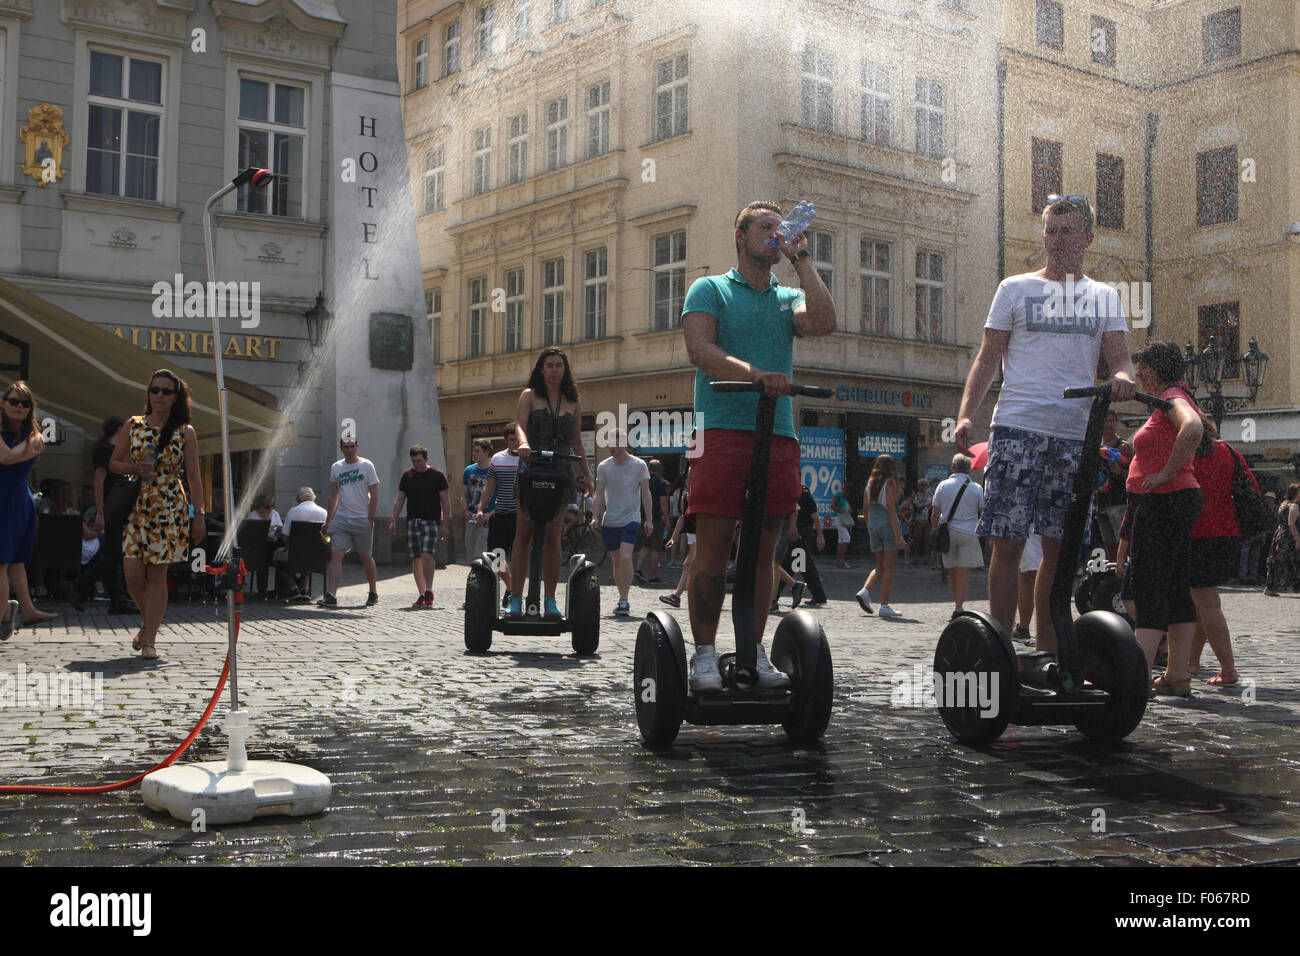 Prague, Czech Republic. 7th August 2015. People riding Segways try to cool off from a water sprinkler installed - Stock Image